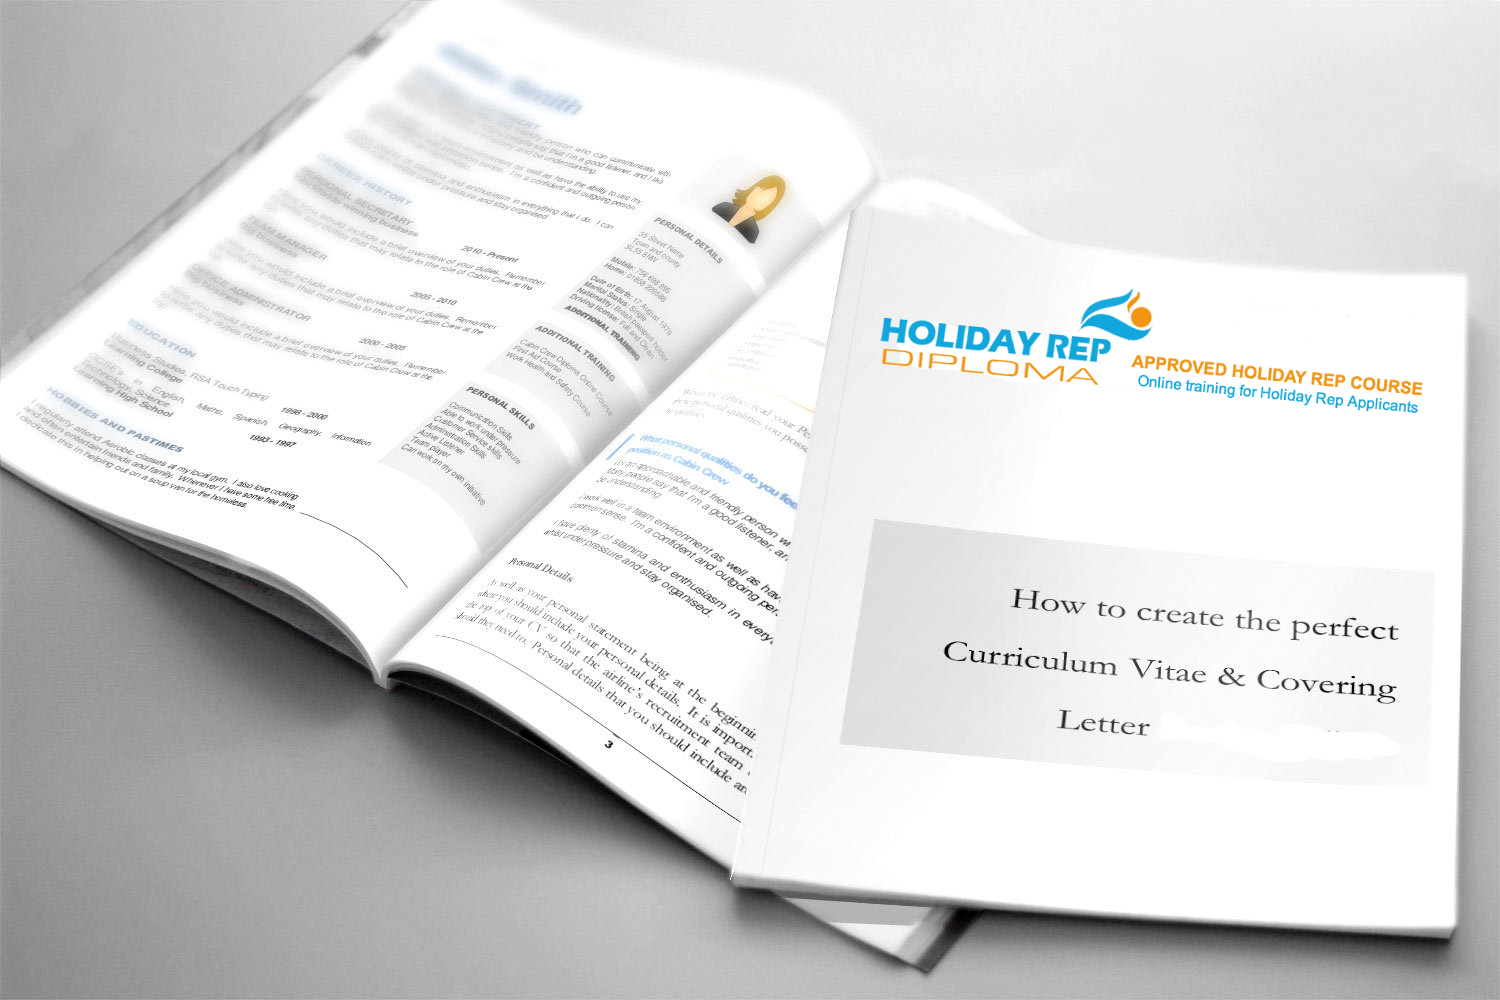 Holiday Rep perfect CV and Covering Letter Cheat Guides REP0010